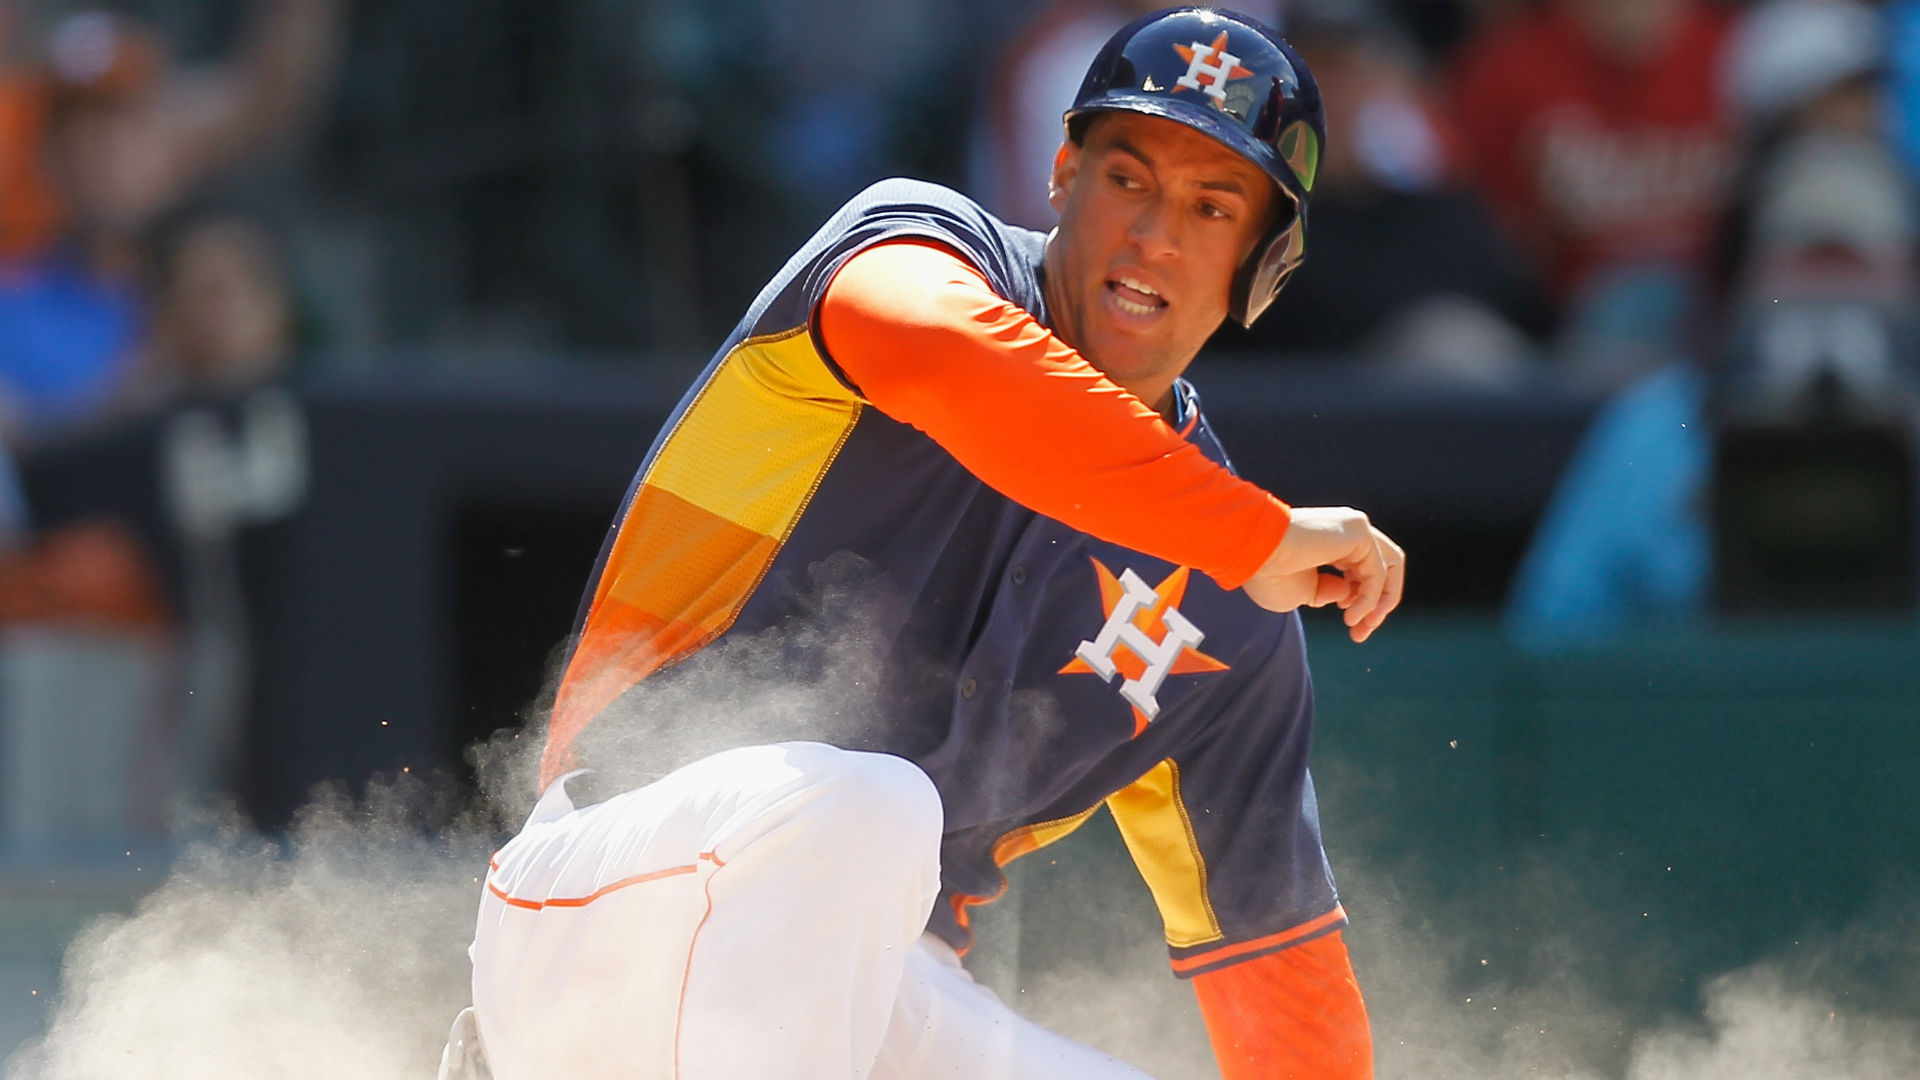 Waiver Report: Springer's been sprung